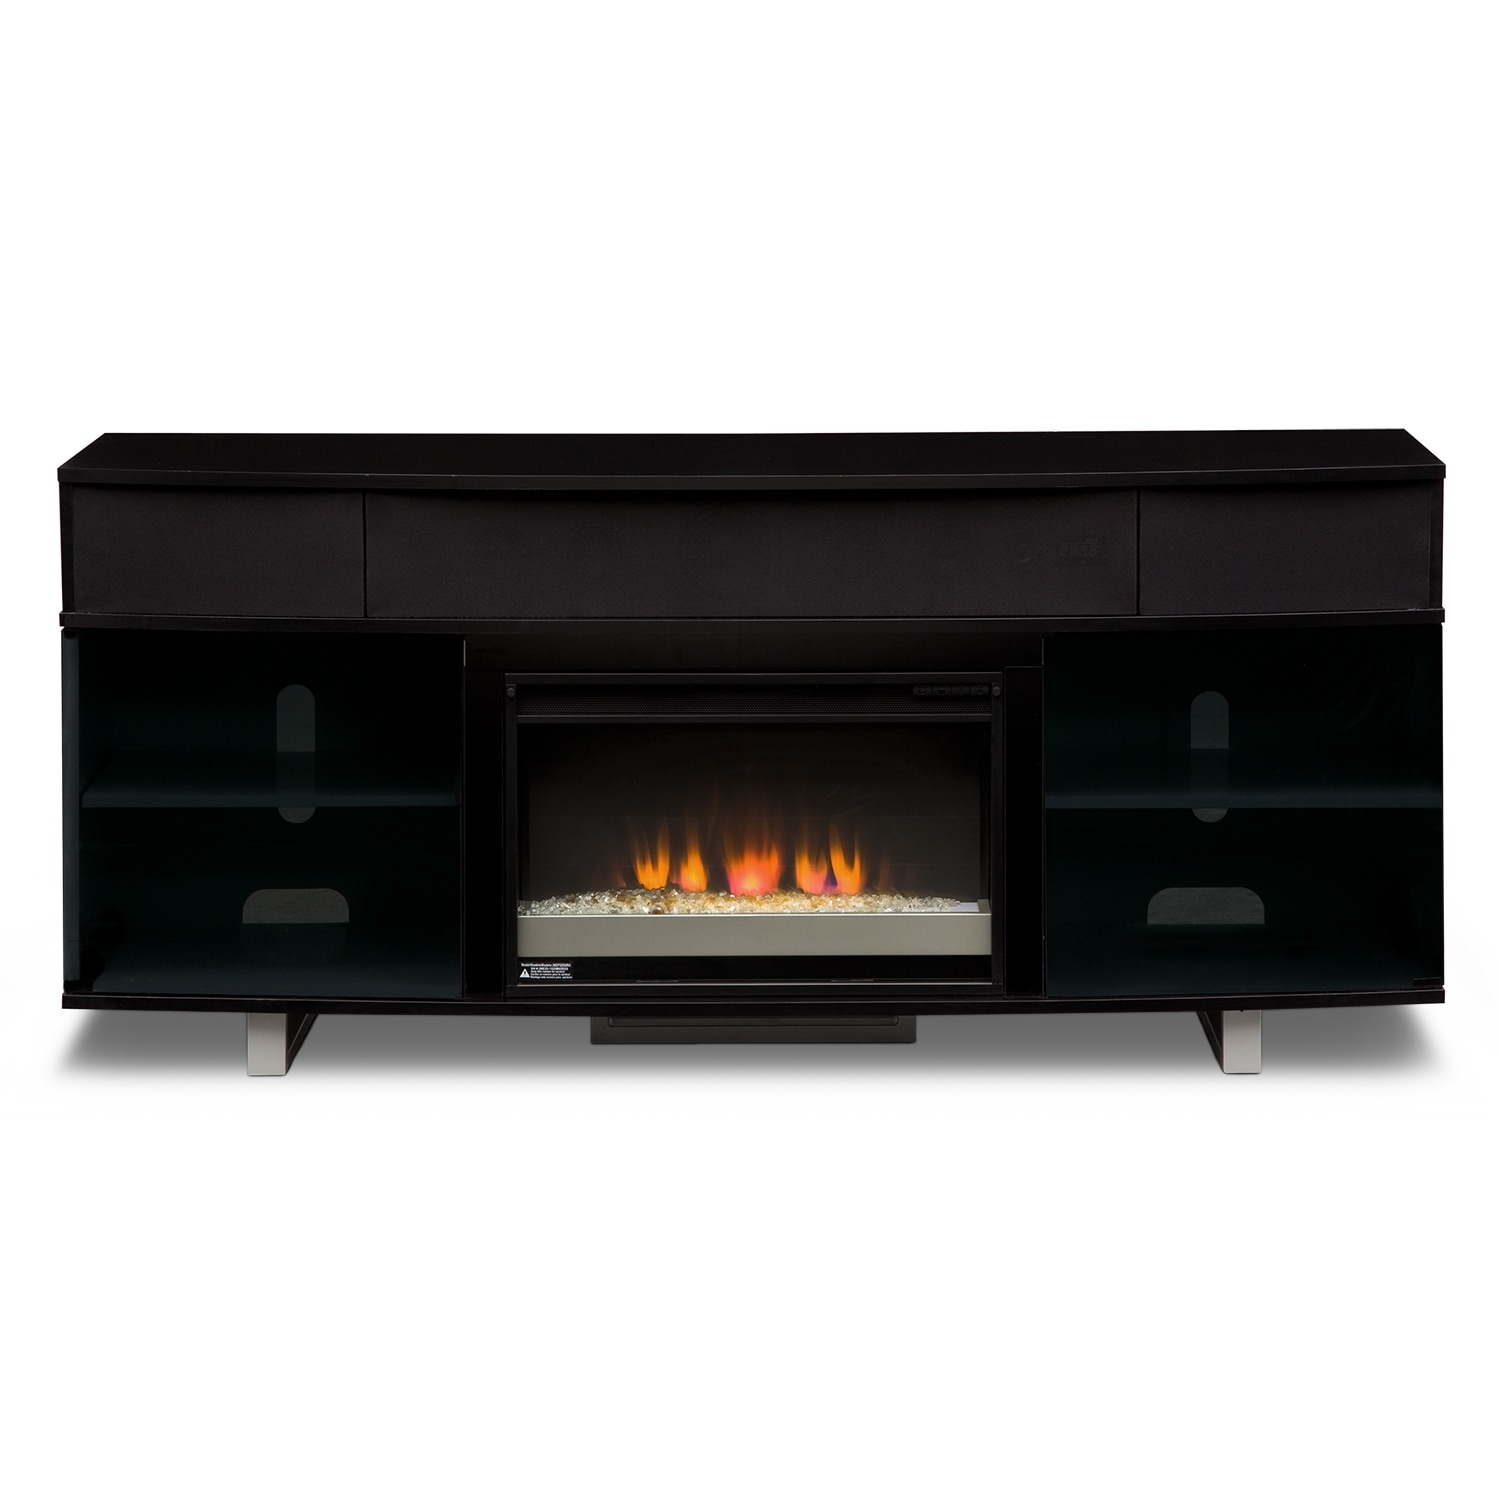 Fireplace Sounds Pacer Fireplace Tv Stand With Sound Bar